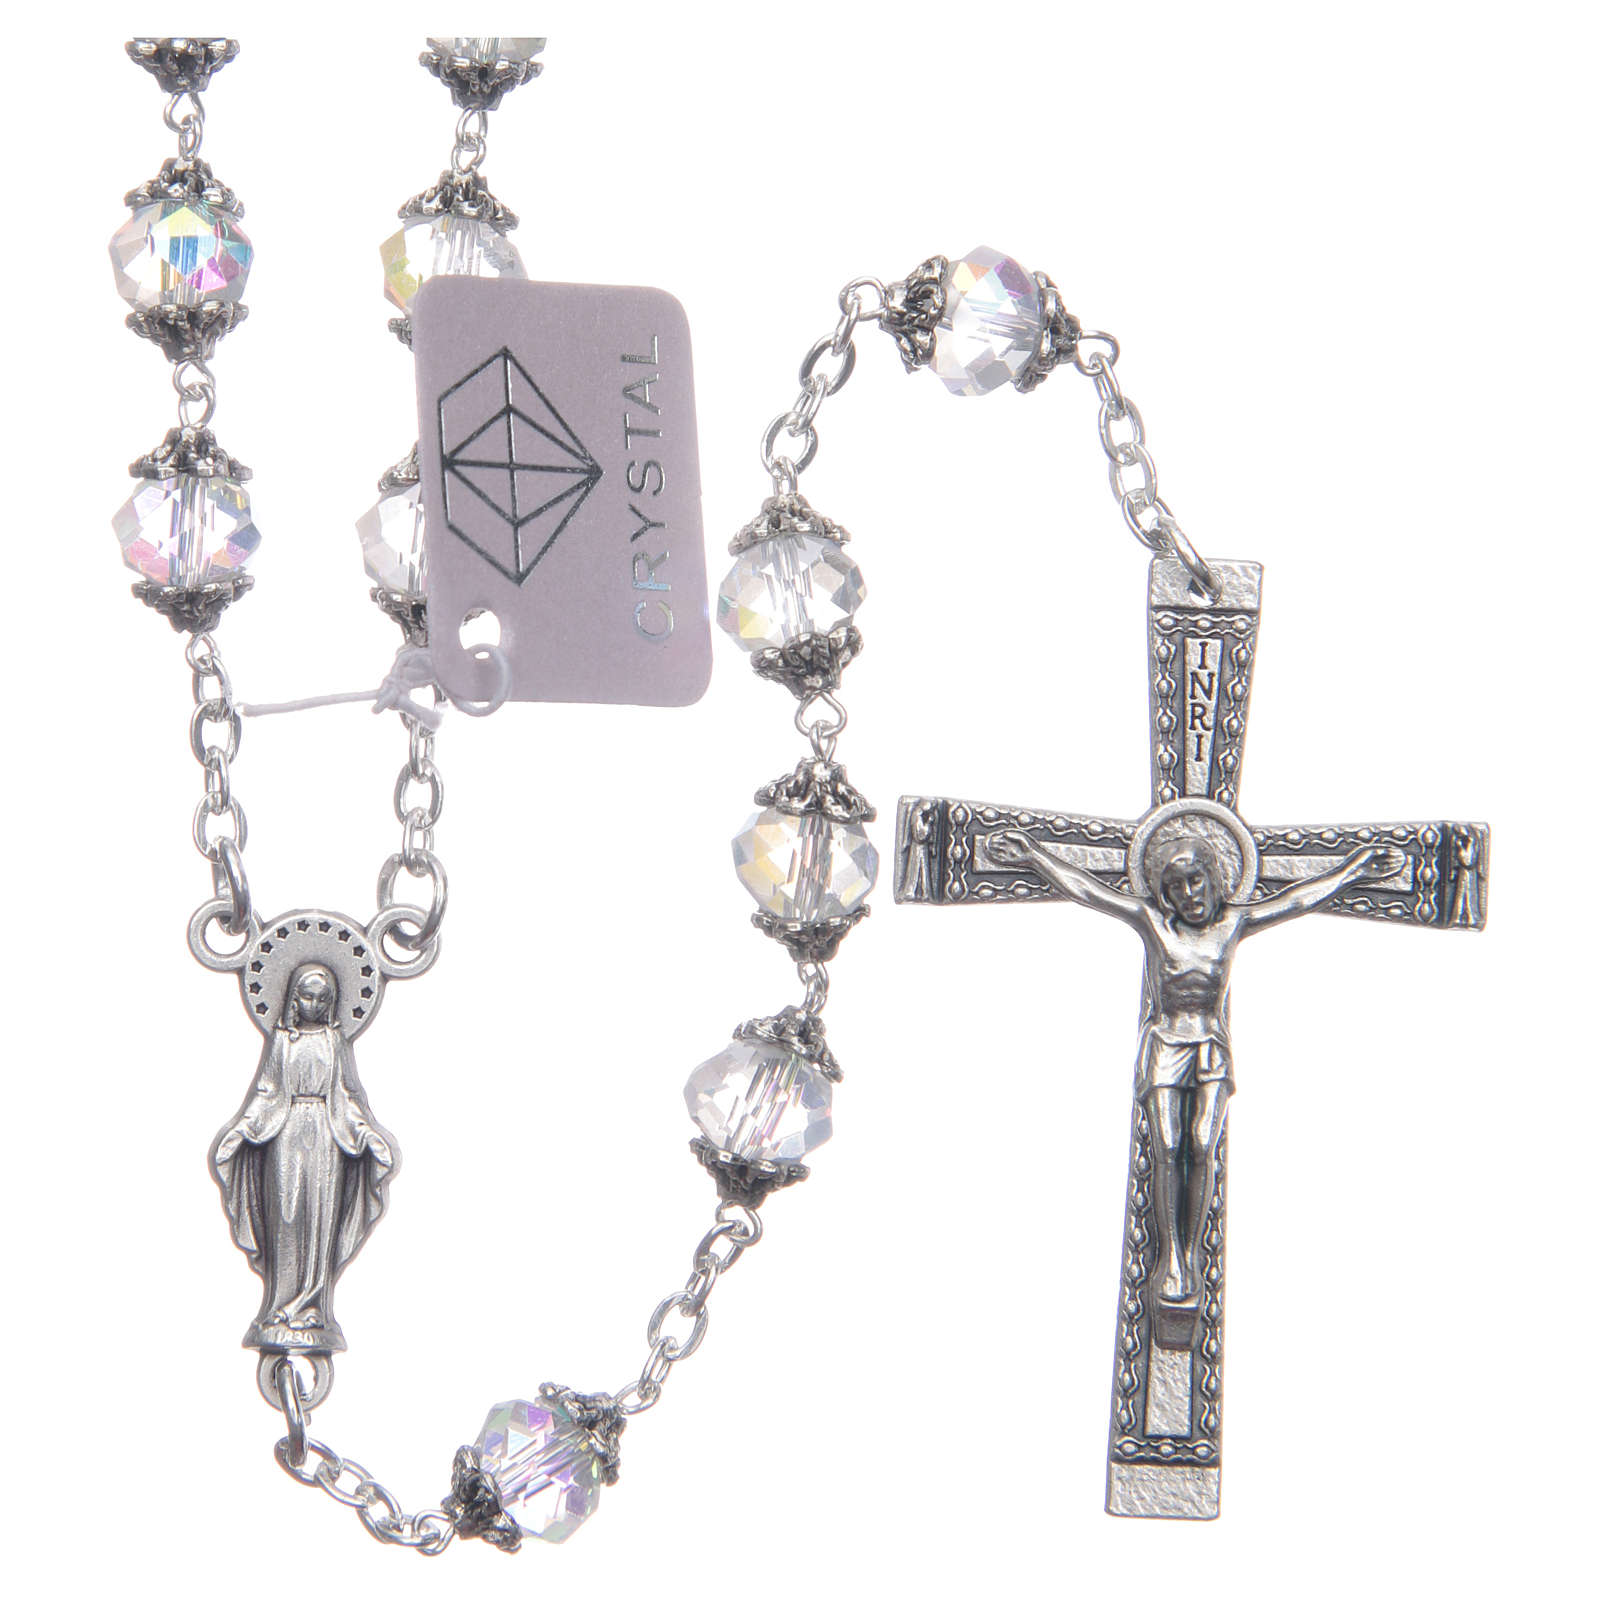 Medjugorje rosary with transparent crystal grains 4